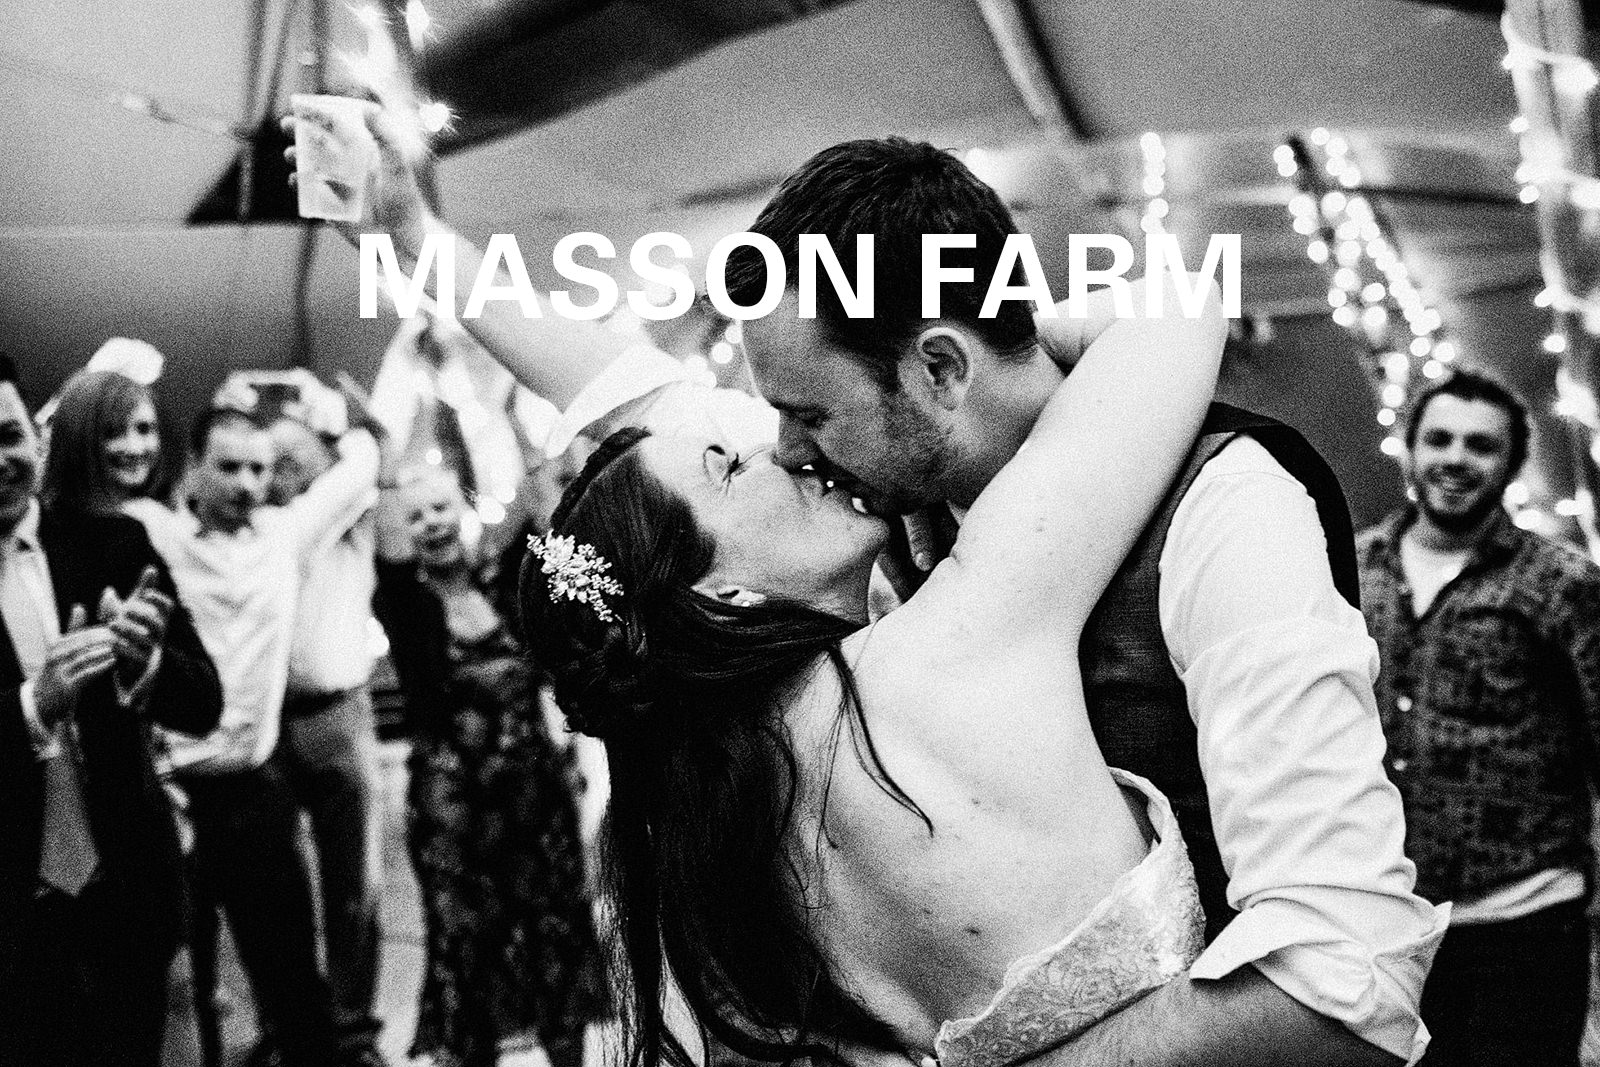 Masson Farm Weddings